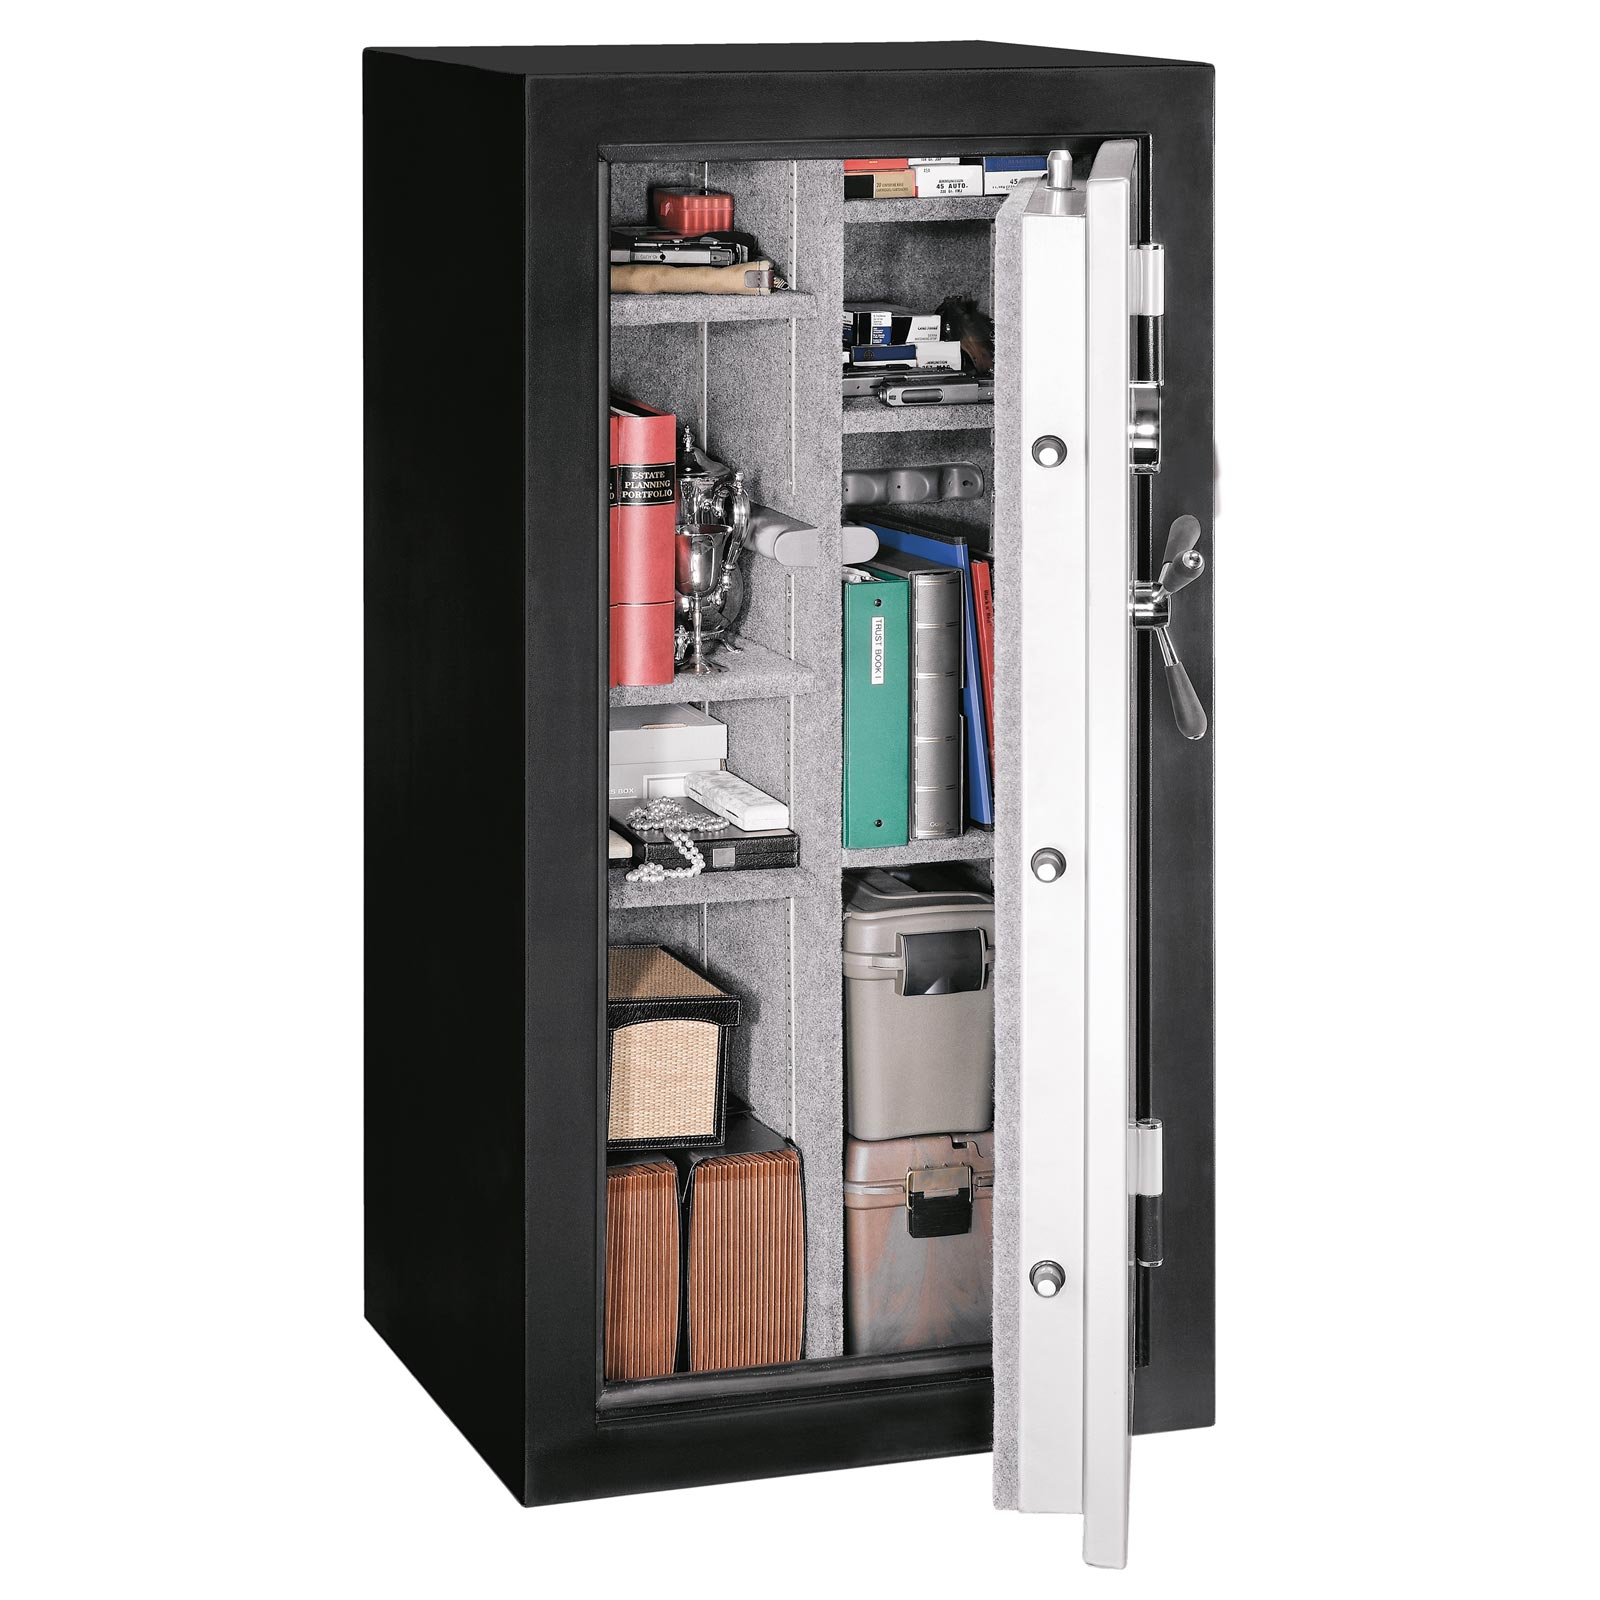 Stack-On TD-28-SB-E Fire & Water Resistant Convertible Safe w/ Electronic Lock - 28-Gun - GSTD-28-SB-E